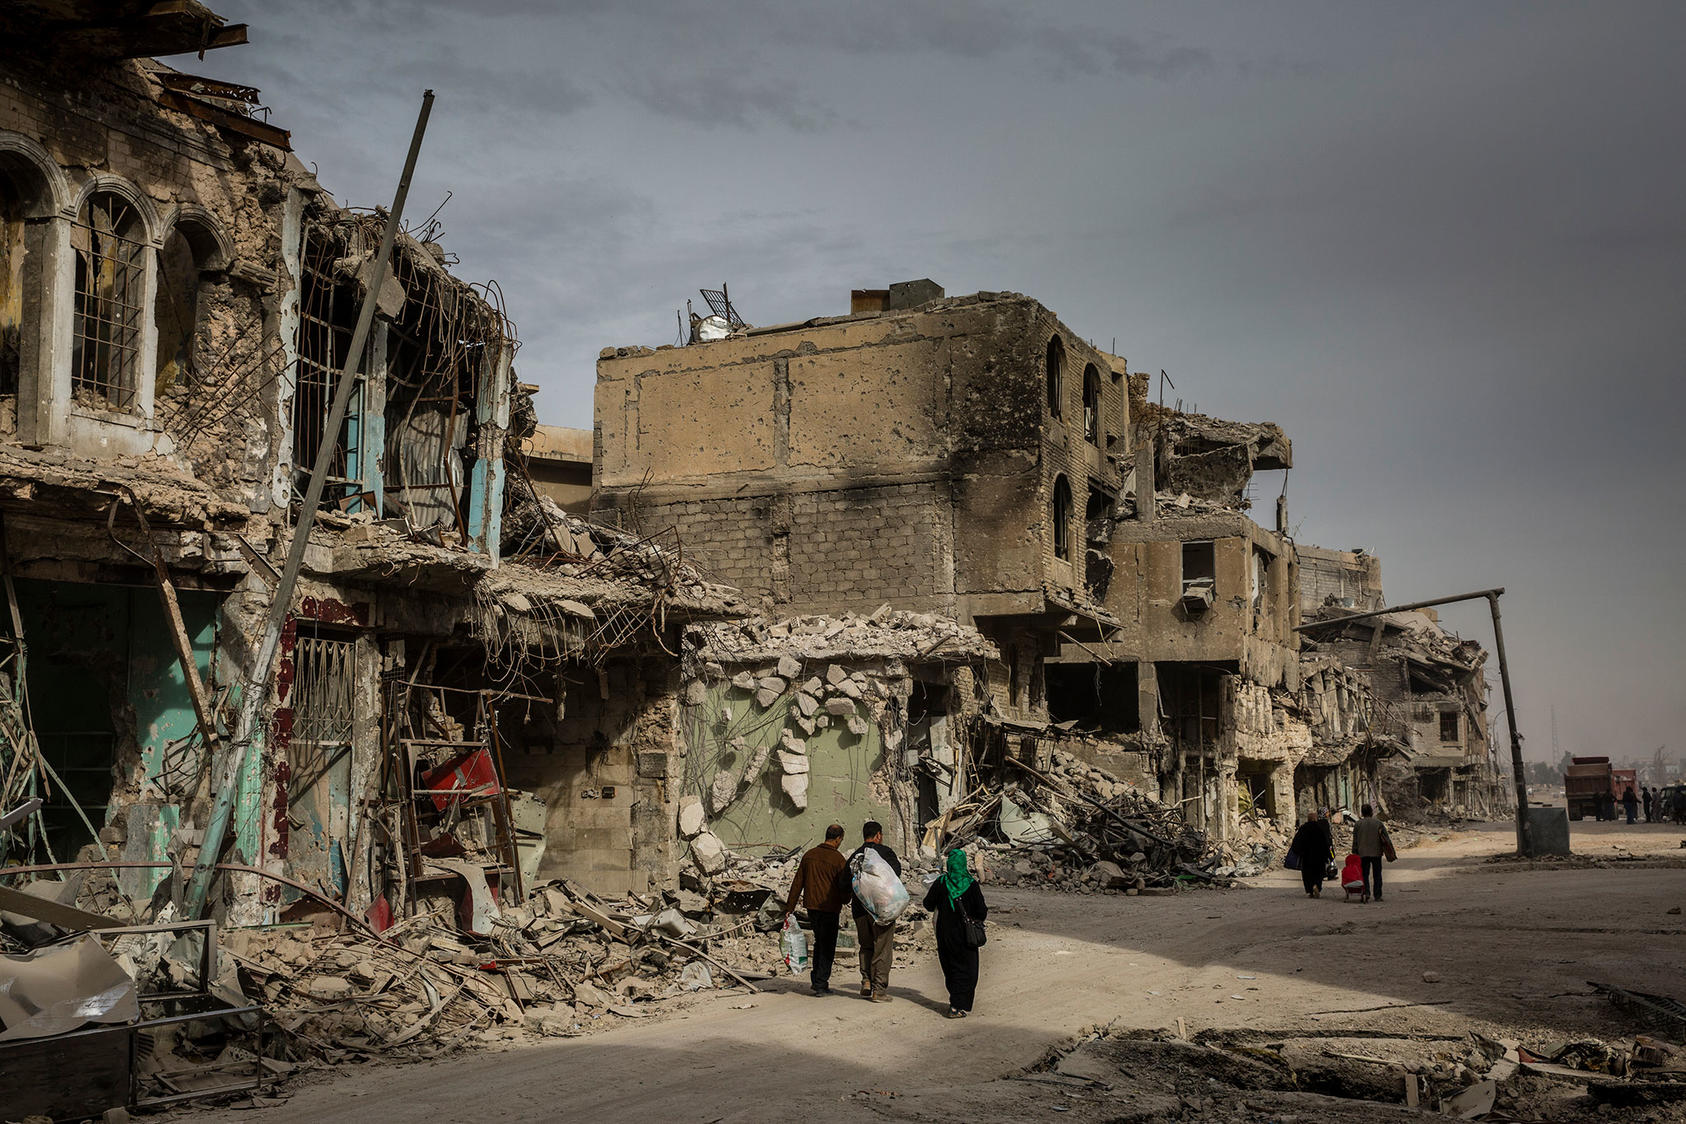 Iraqis return to their destroyed homes in the Old City of Mosul, in December 2017.